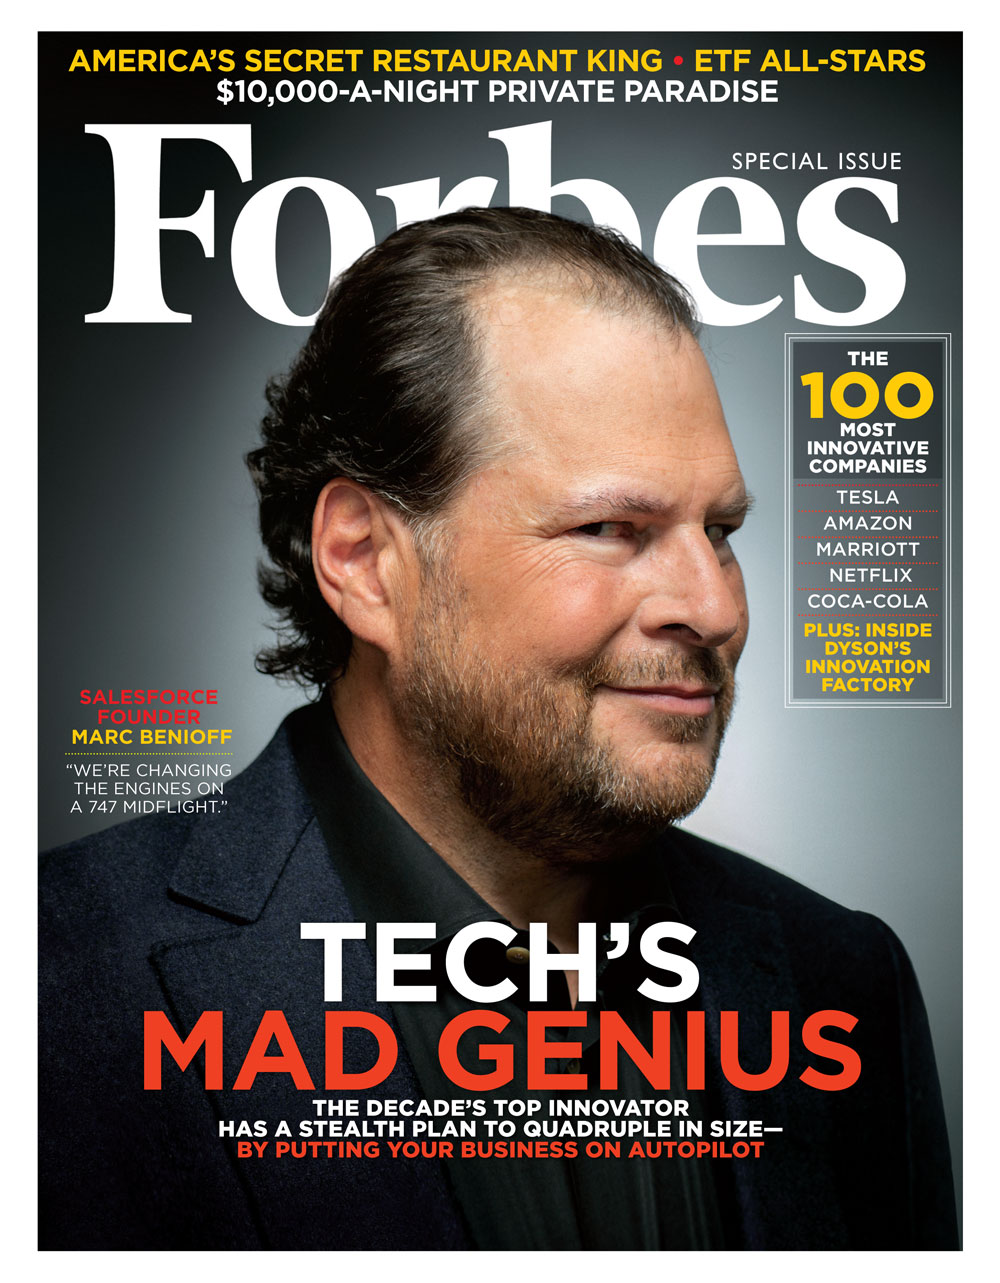 Benioff's New Product – Einstein